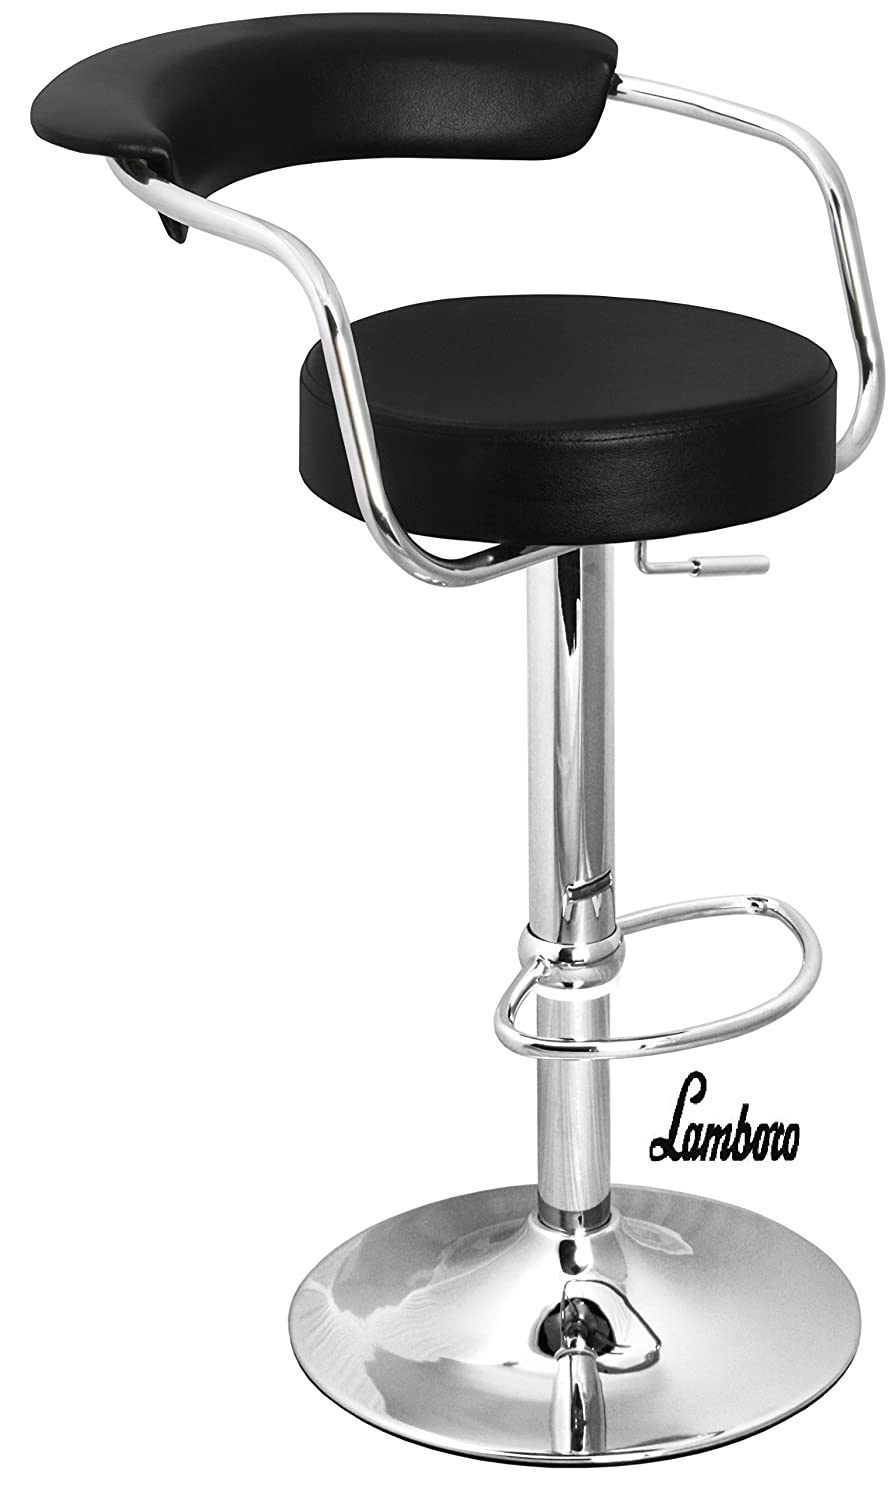 Black & Chrome Swivel Bar Kitchen Breakfast Stools Chair By Lavin Lifestyle 060